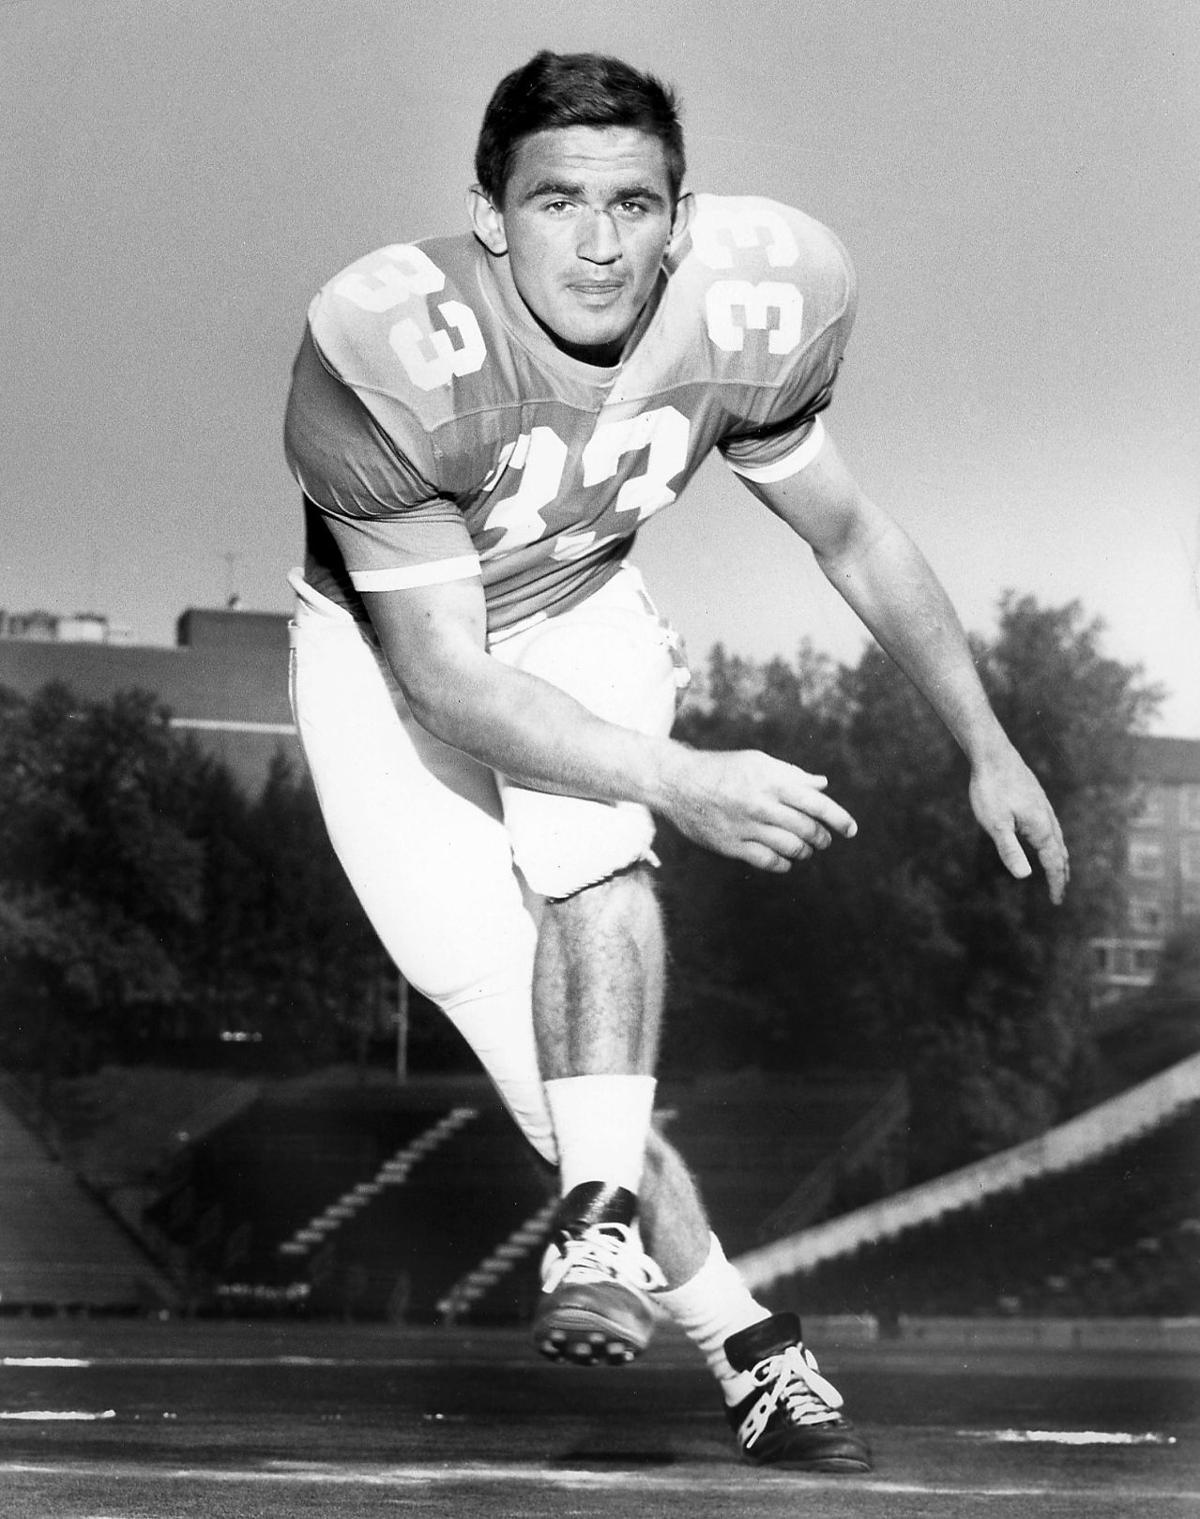 Ben Dalton as University of Tennessee football player